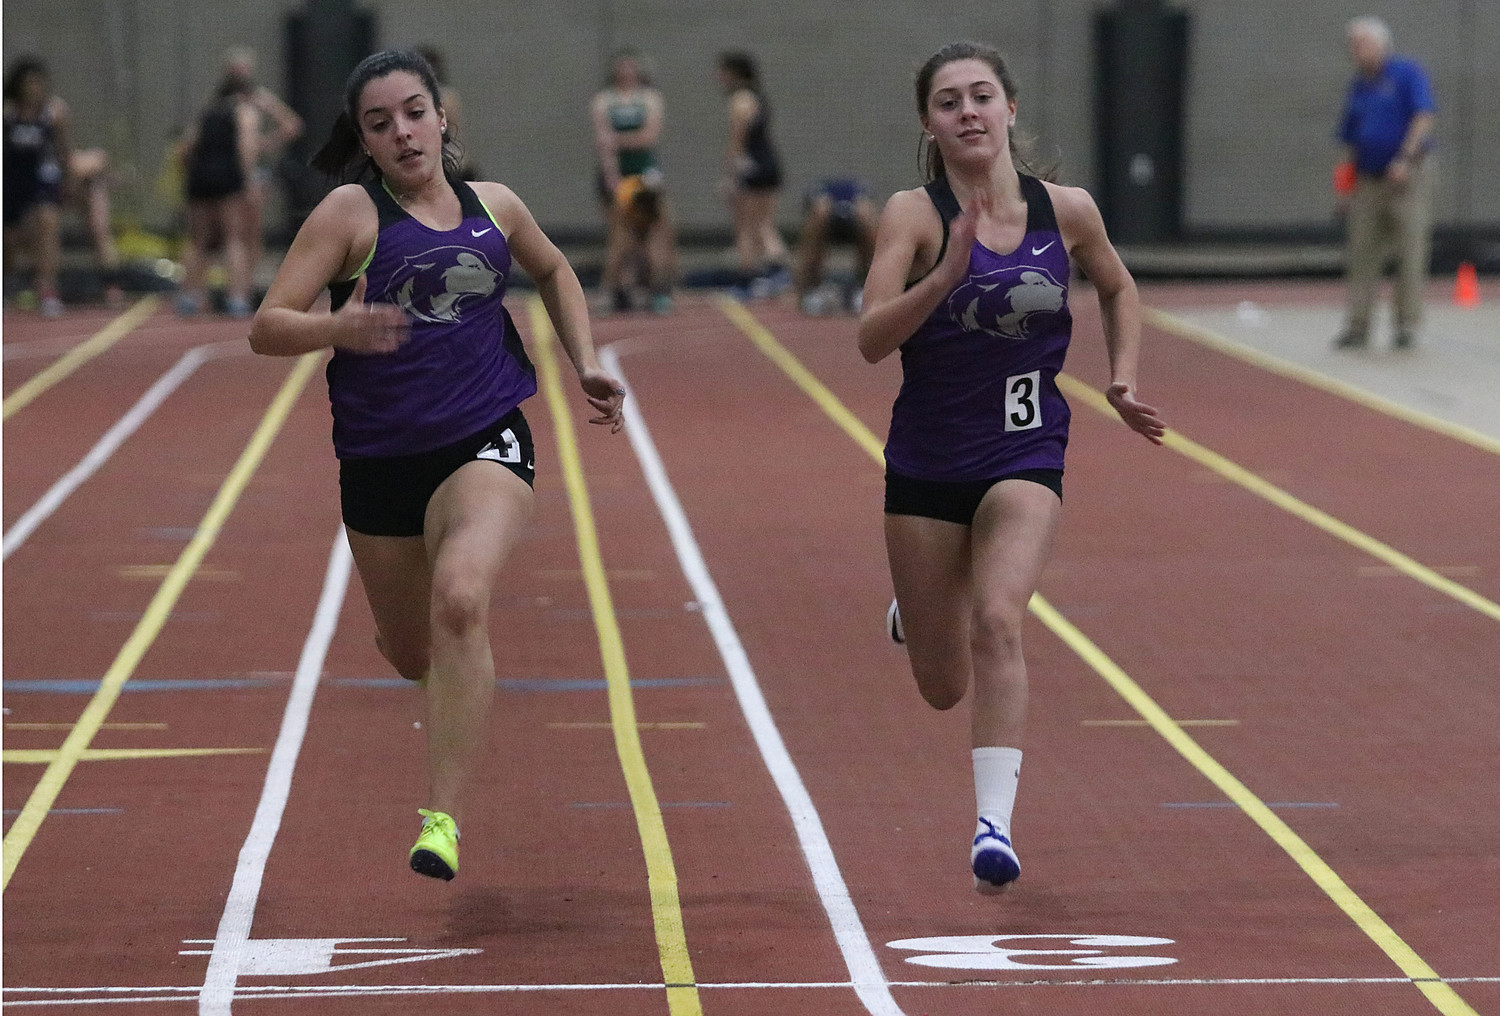 Kelsey Dias (left) and teammate, Kiley Bouchard race down the track during a 55 meter heat. Dias placed second and Bouchard placed third in the event.